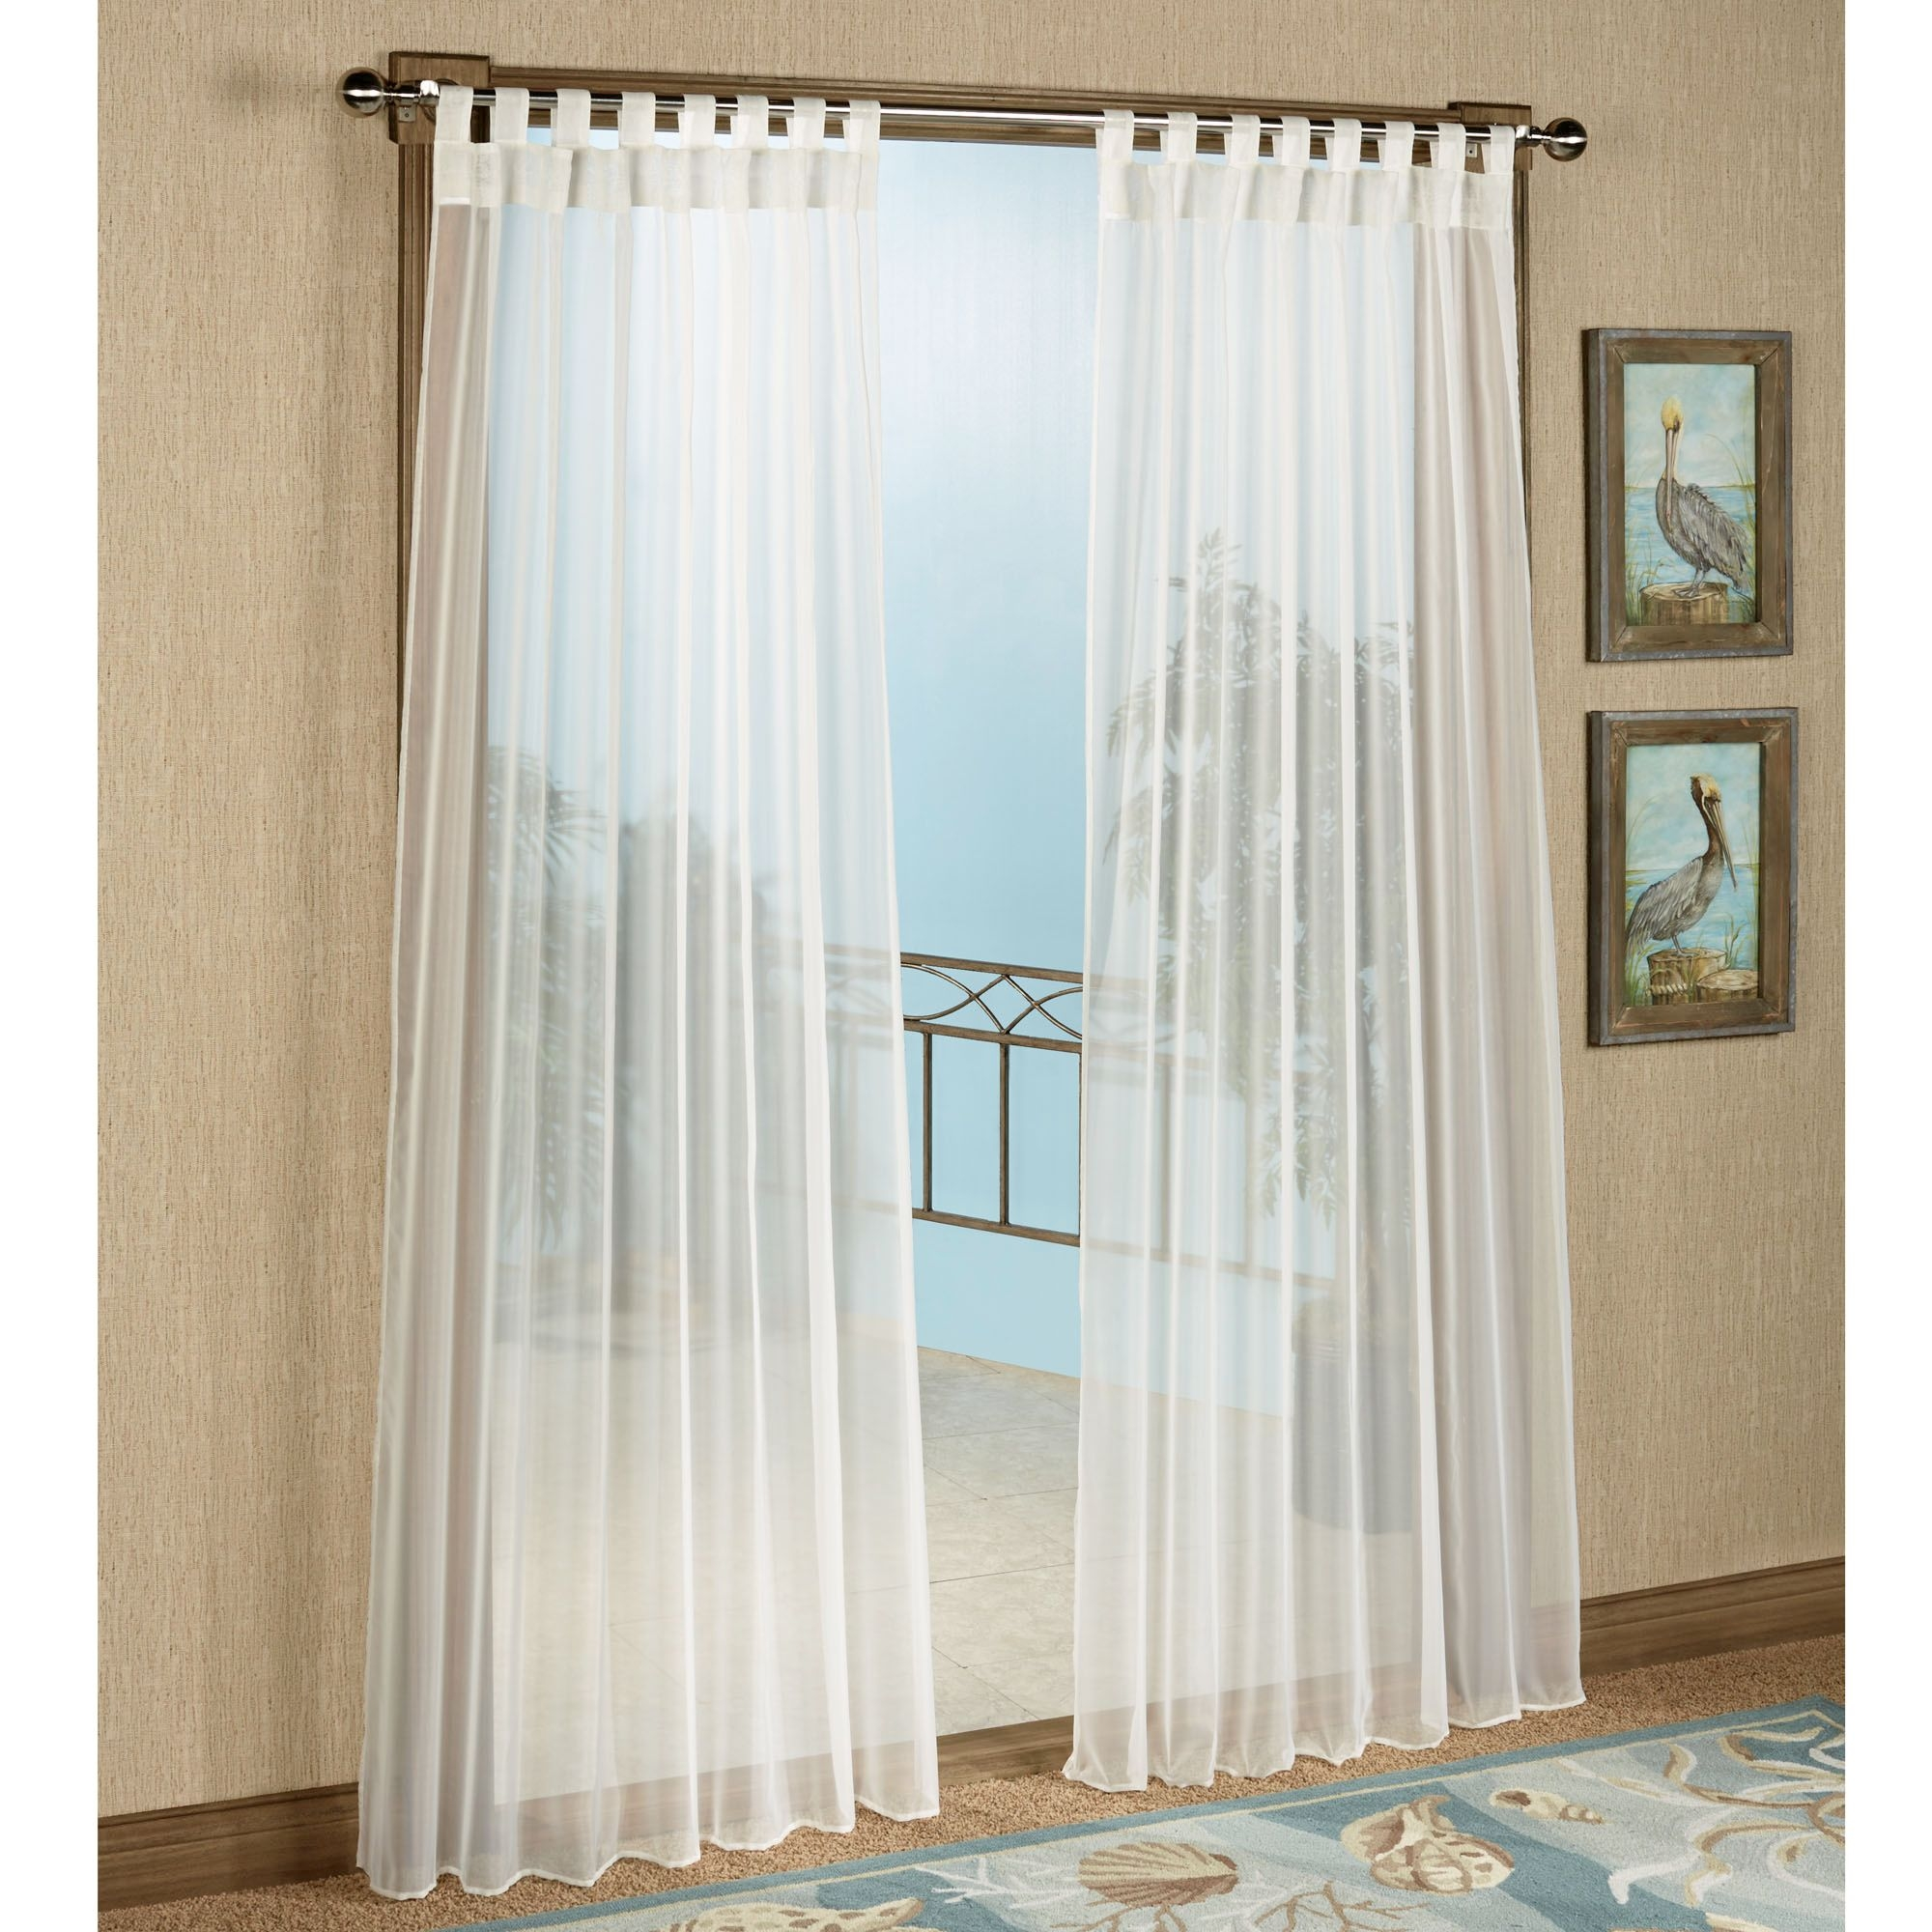 Imposing Ideas Notable Delight Isoh Pleasing Notable Delight Throughout Very Cheap Curtains (View 15 of 25)